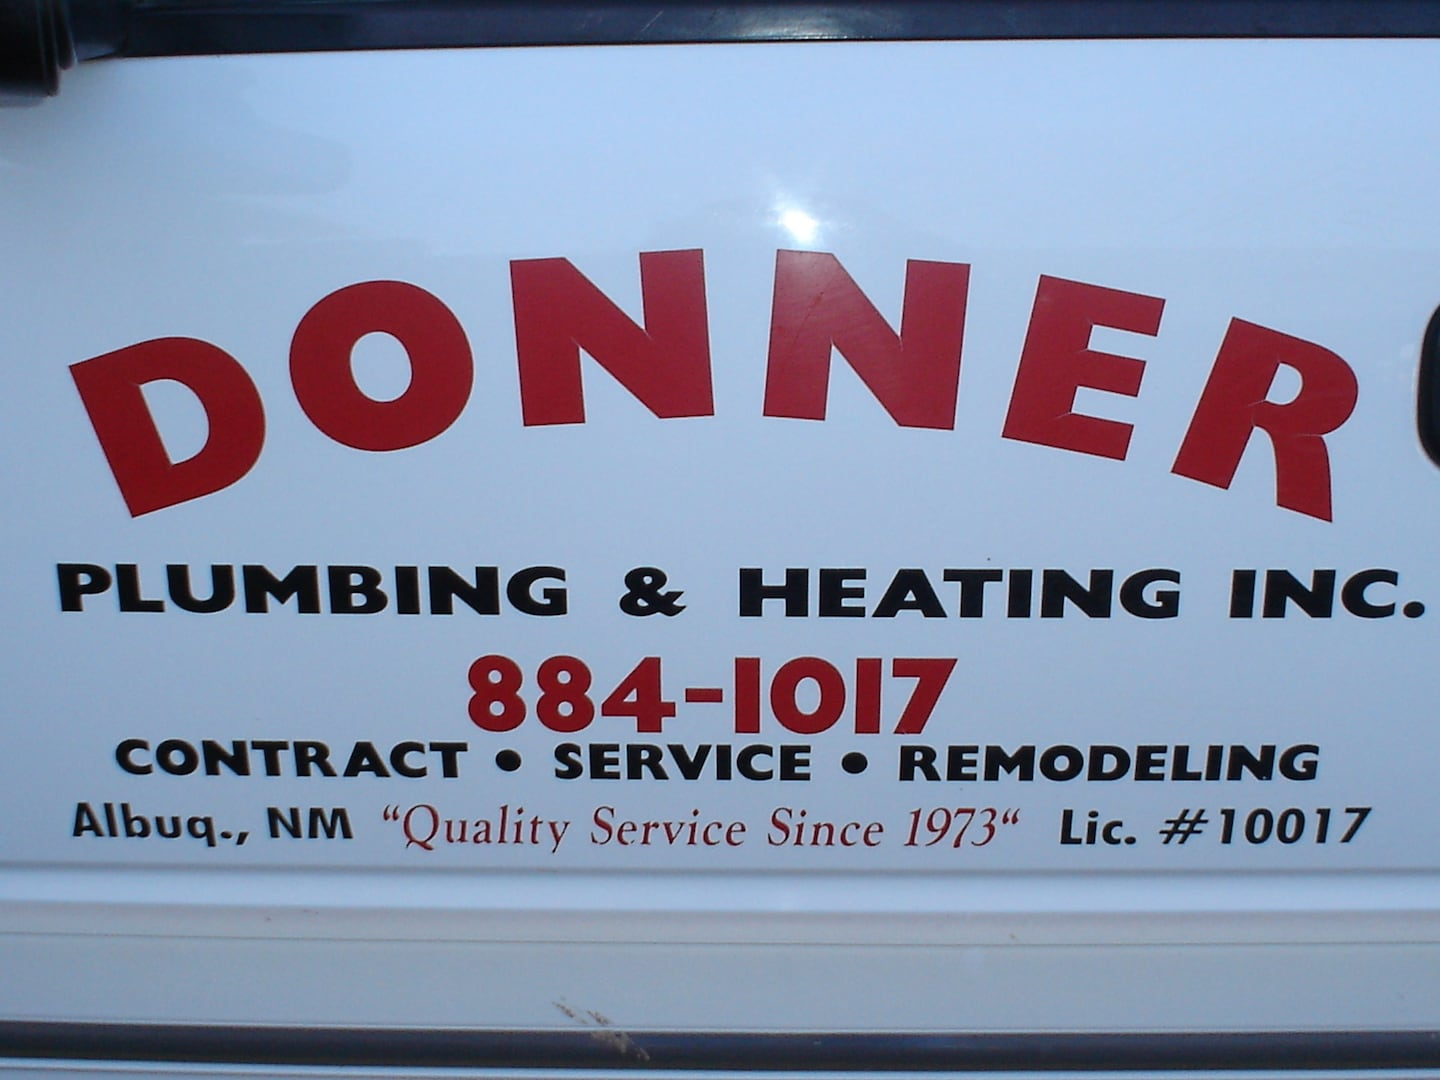 Donner Plumbing & Heating, Inc.